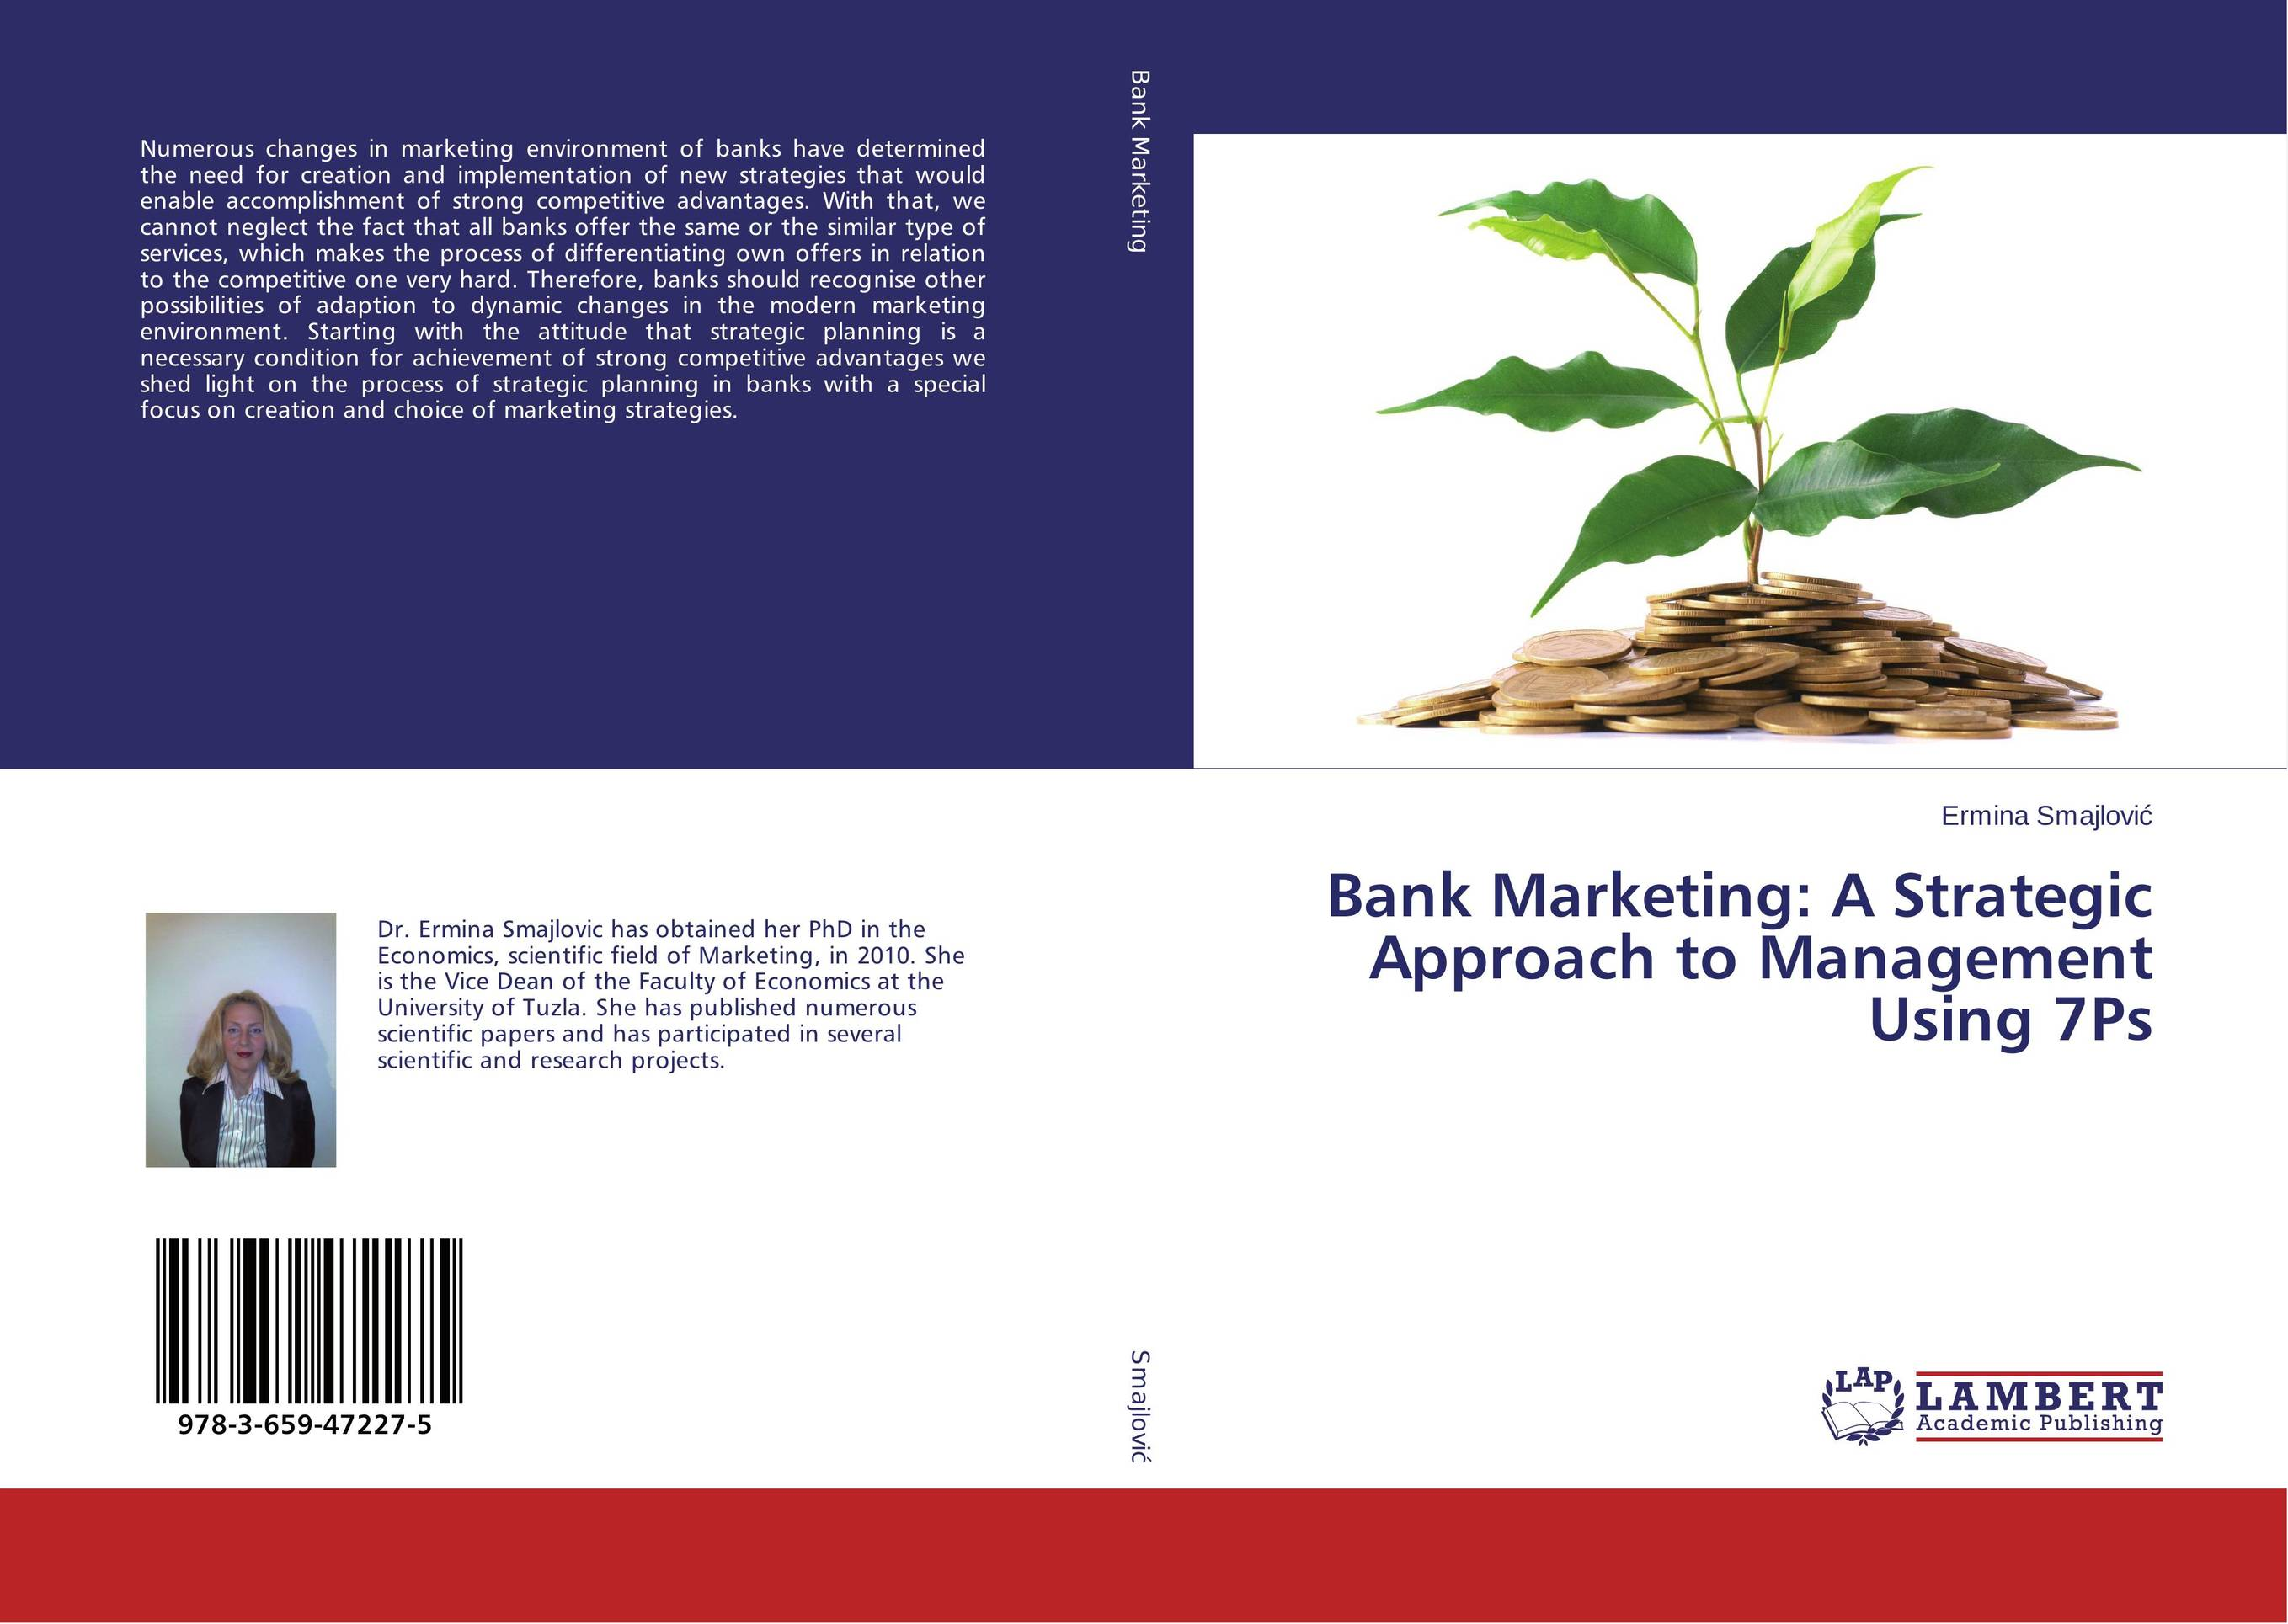 Bank Marketing: A Strategic Approach to Management Using 7Ps sponsorship on marketing communication process